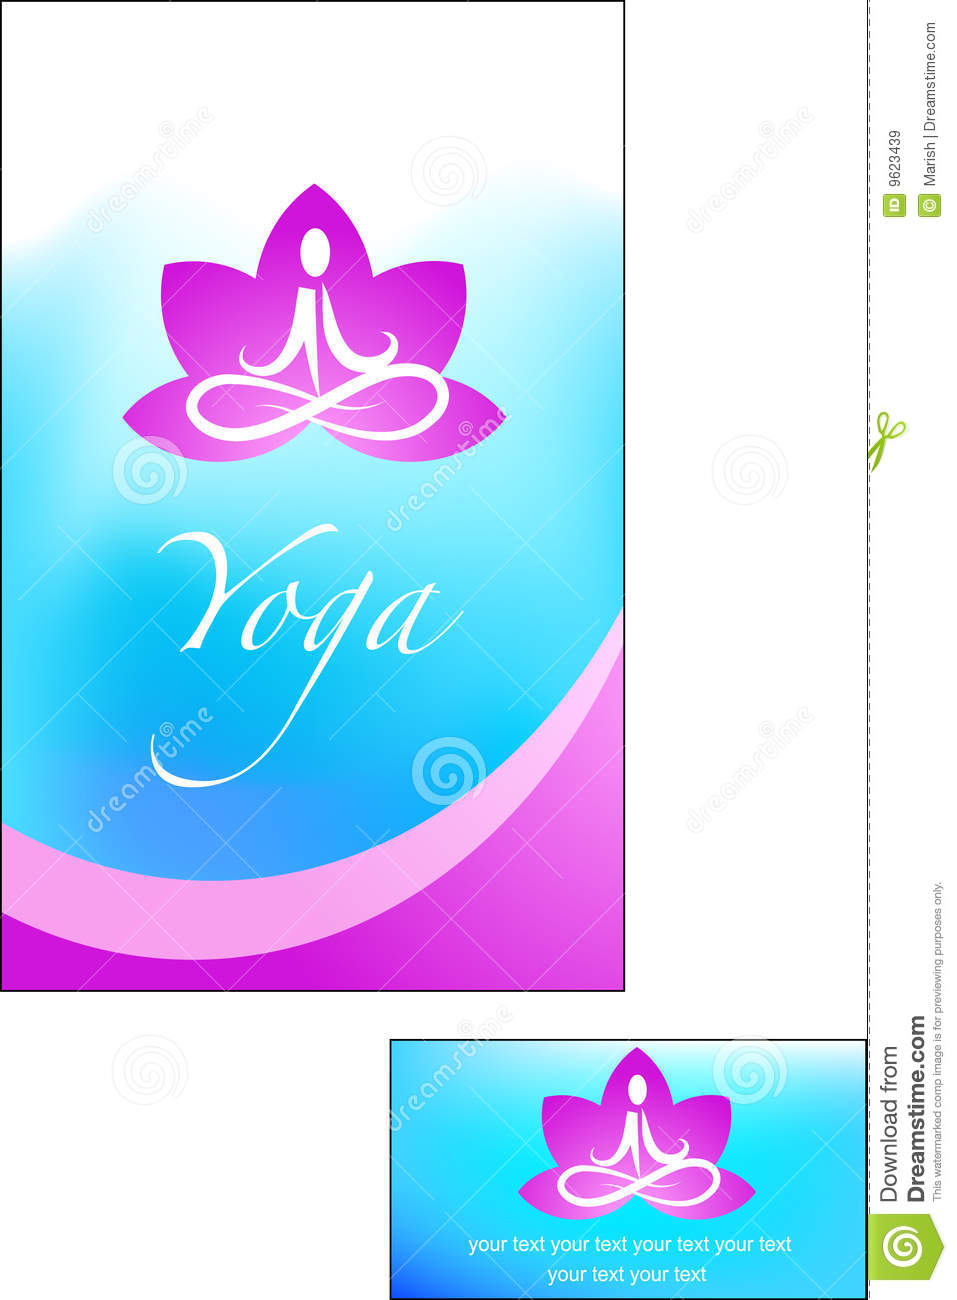 yoga brochure templates free - template of yoga brochure royalty free stock images